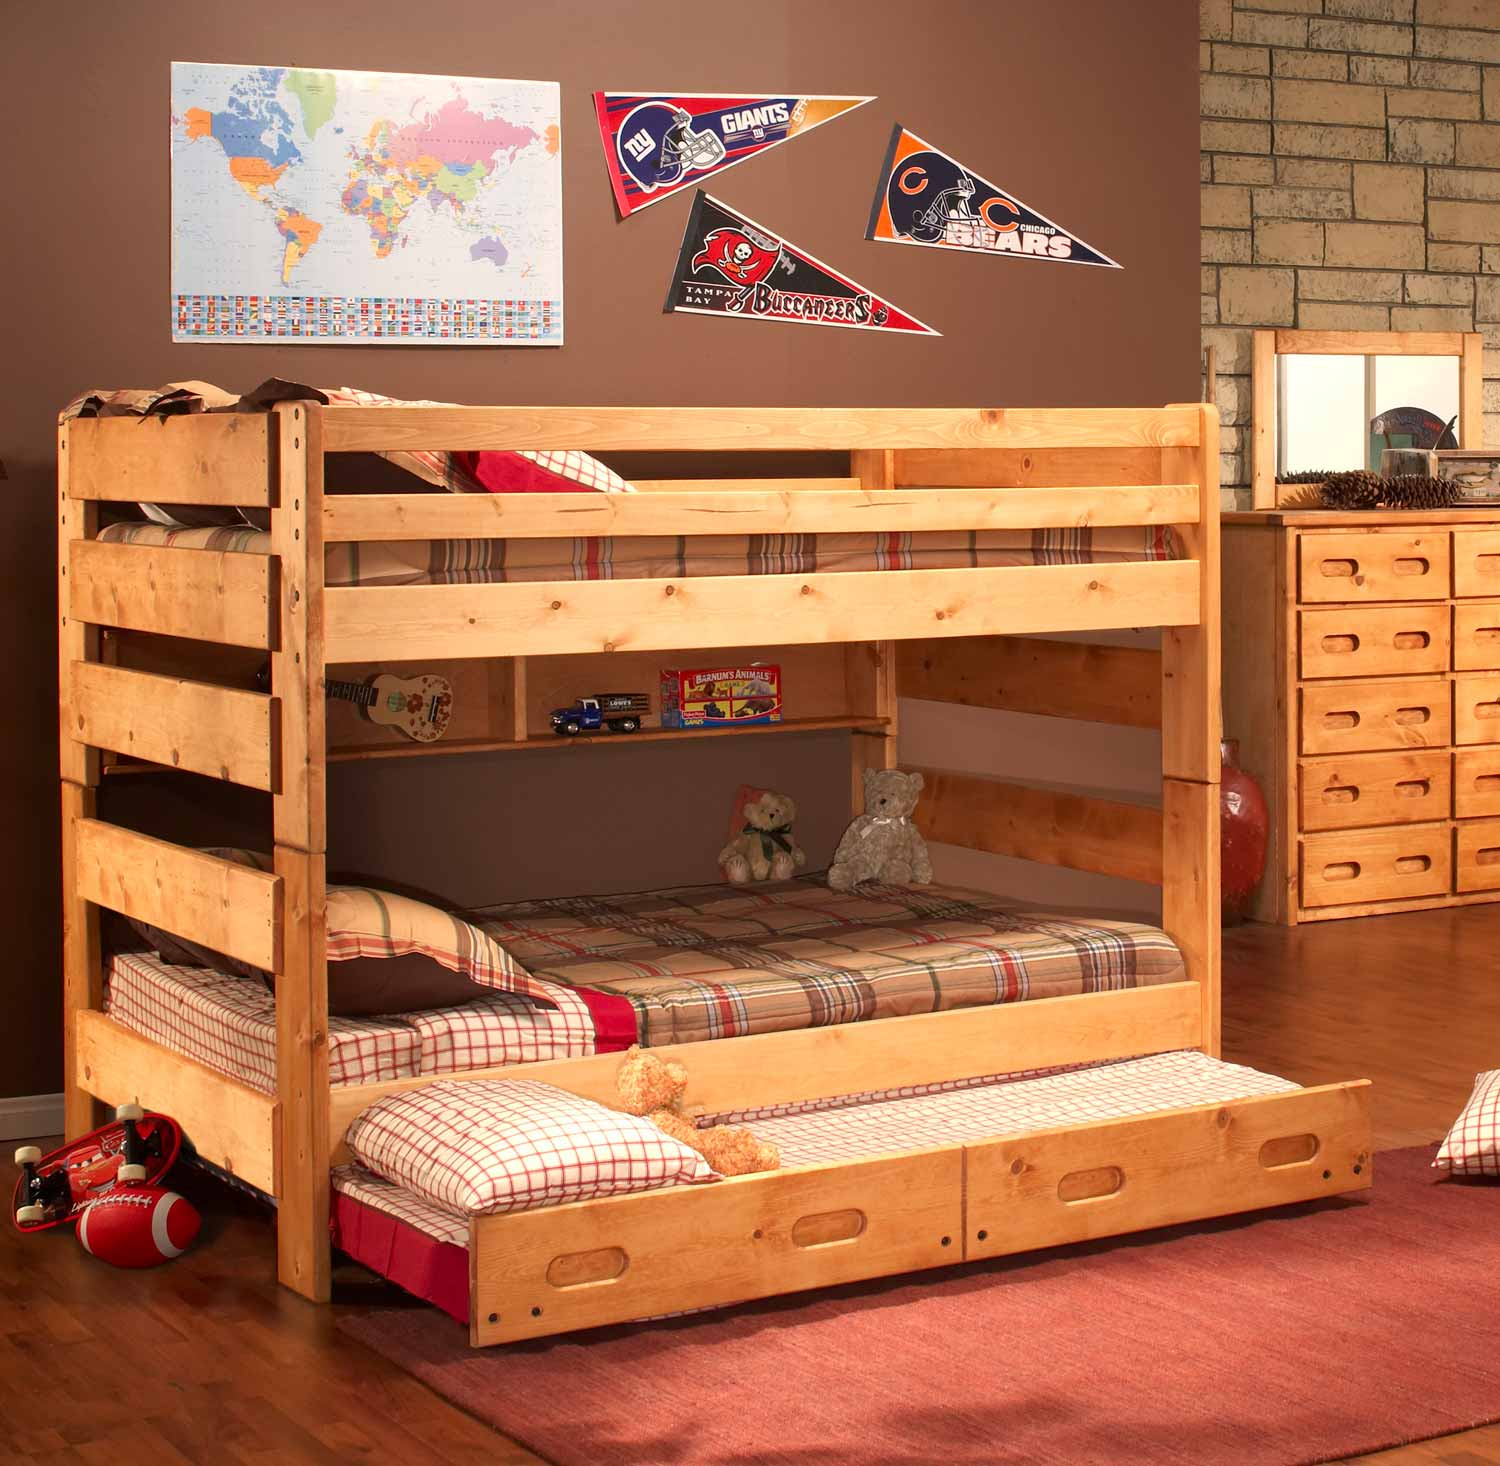 Chelsea Home 3544144-4739-T Full Over Full Bunk Bed with Trundle Unit - Cinnamon